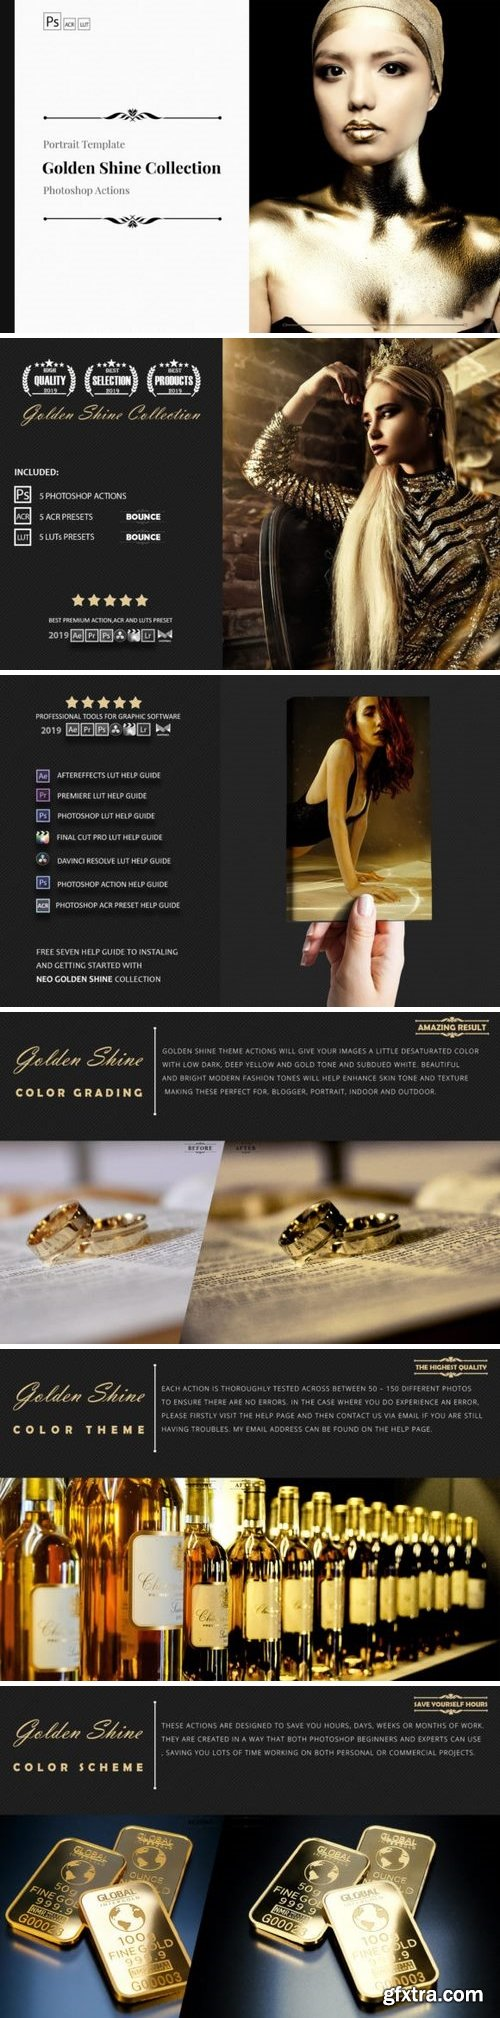 Neo Golden Shine Color grading Photoshop Actions